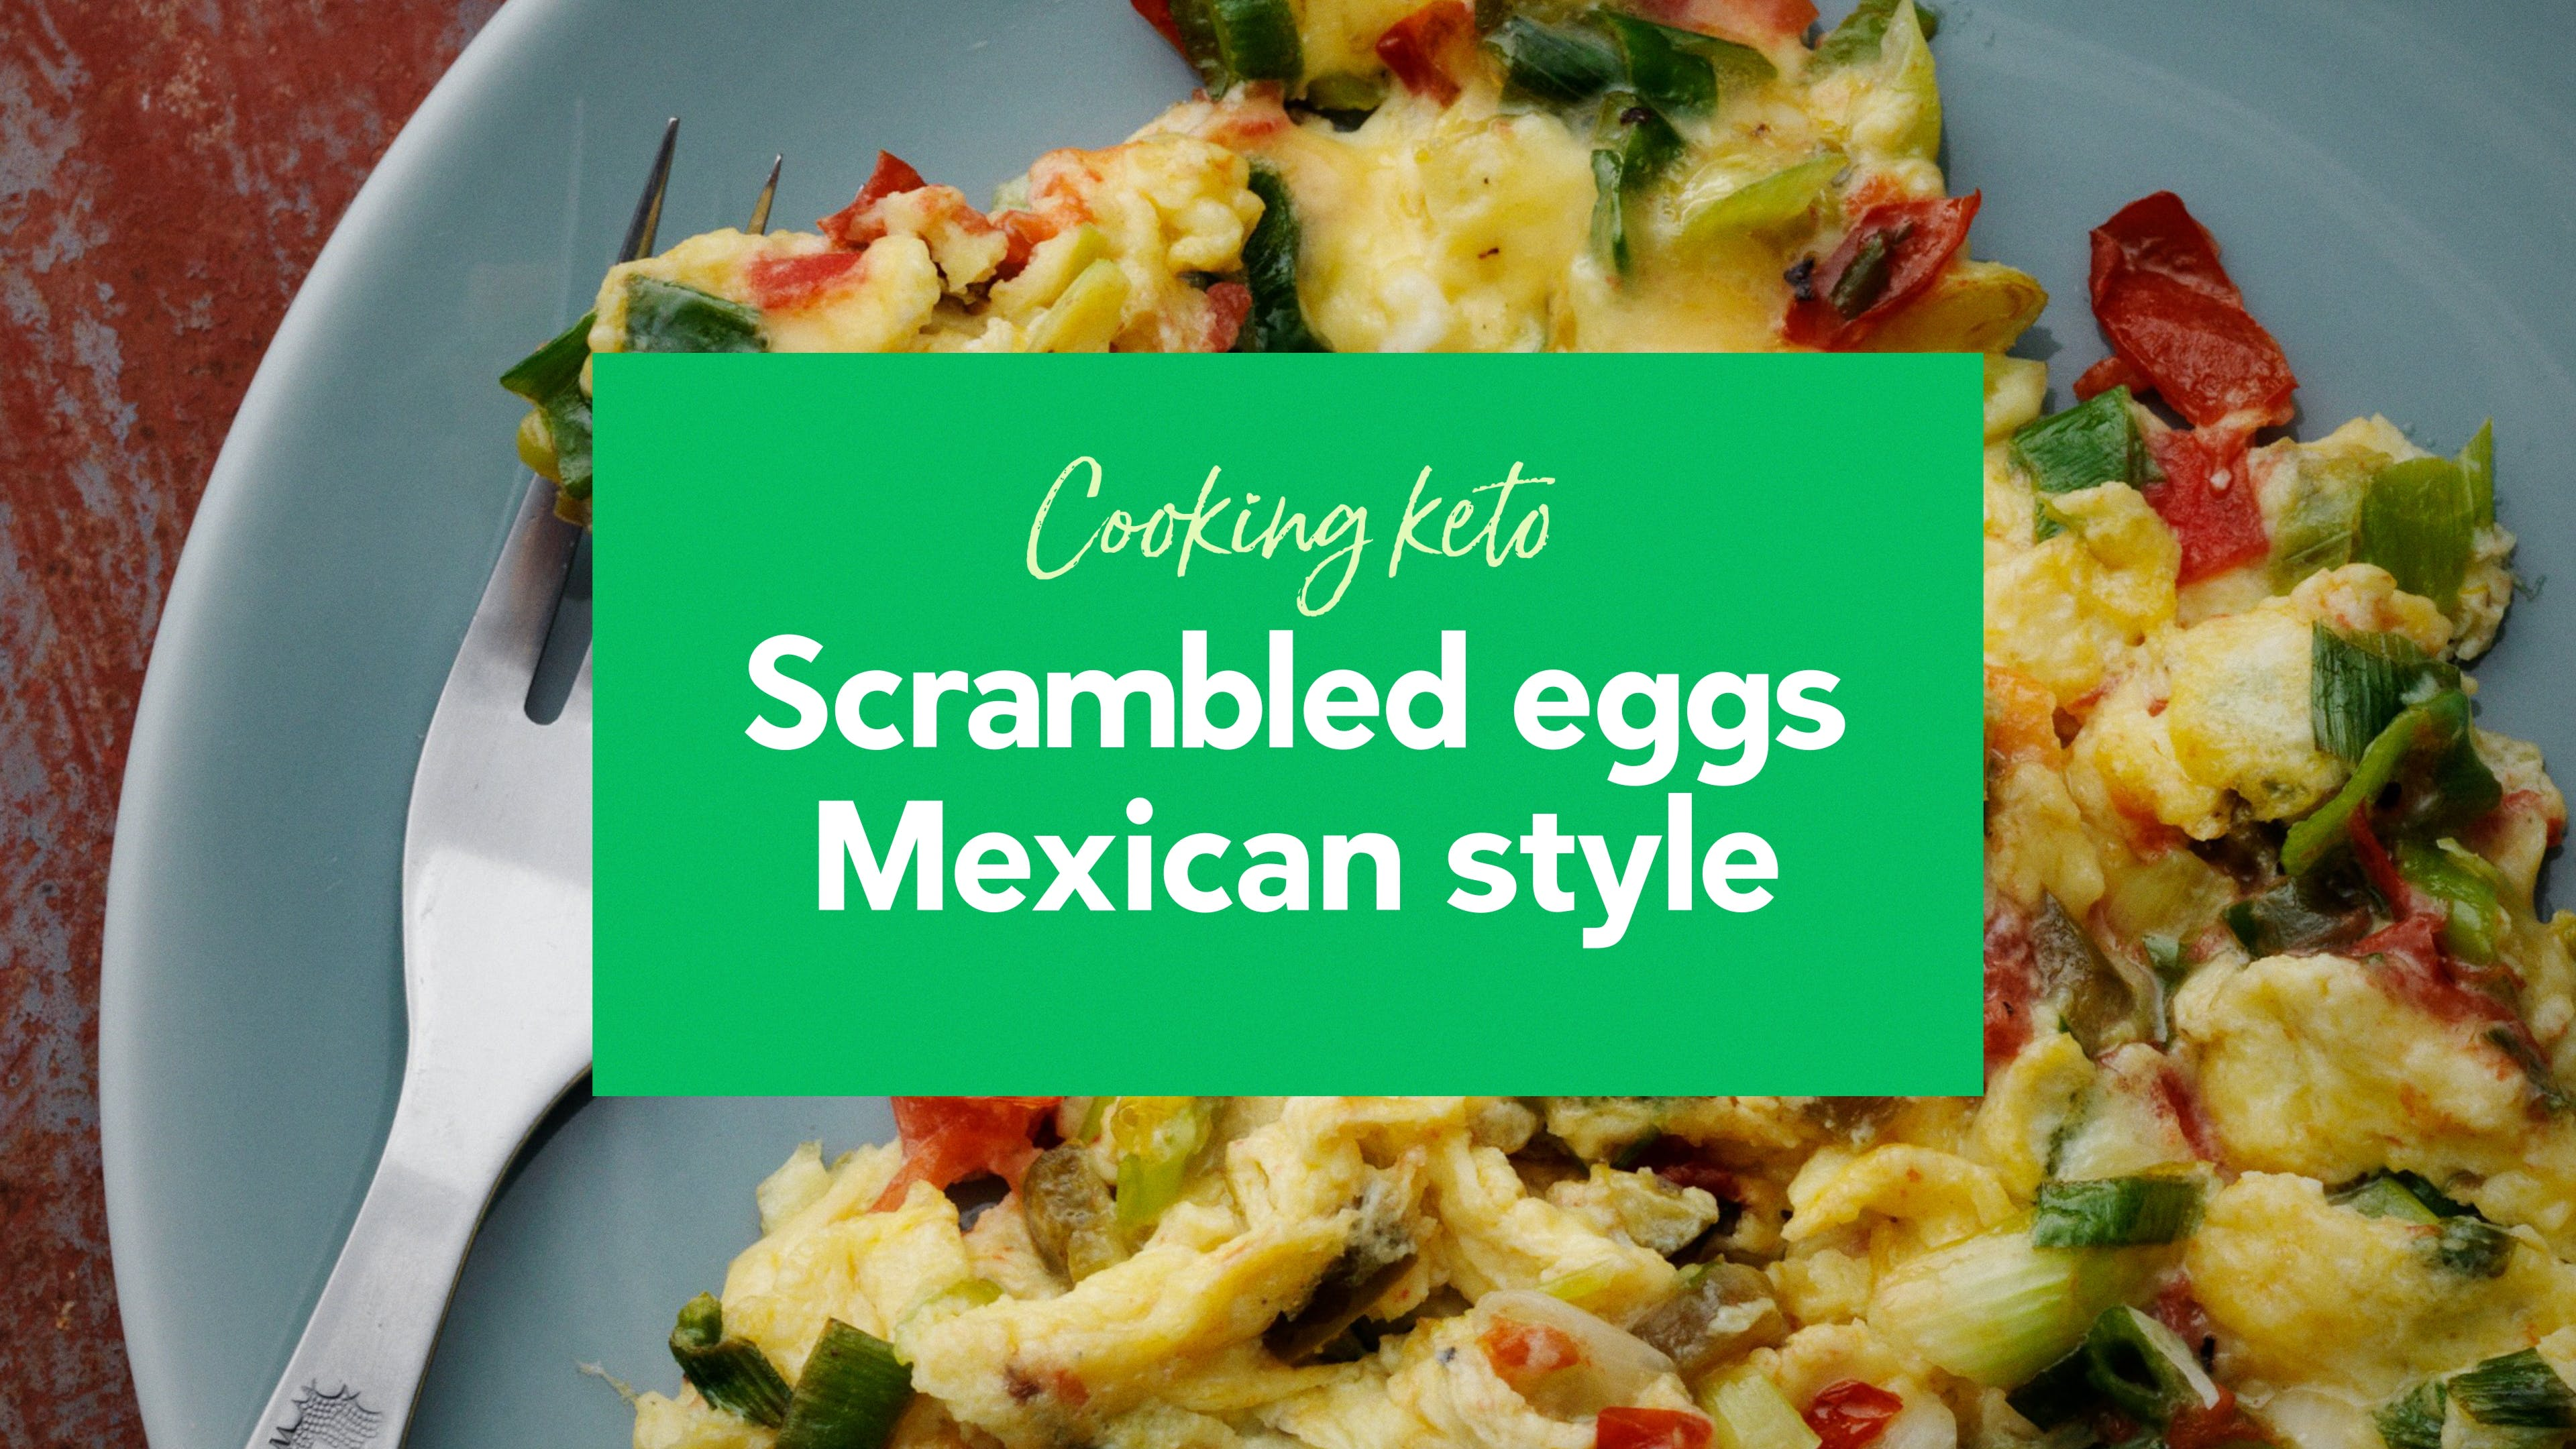 Keto scrambled eggs Mexican style